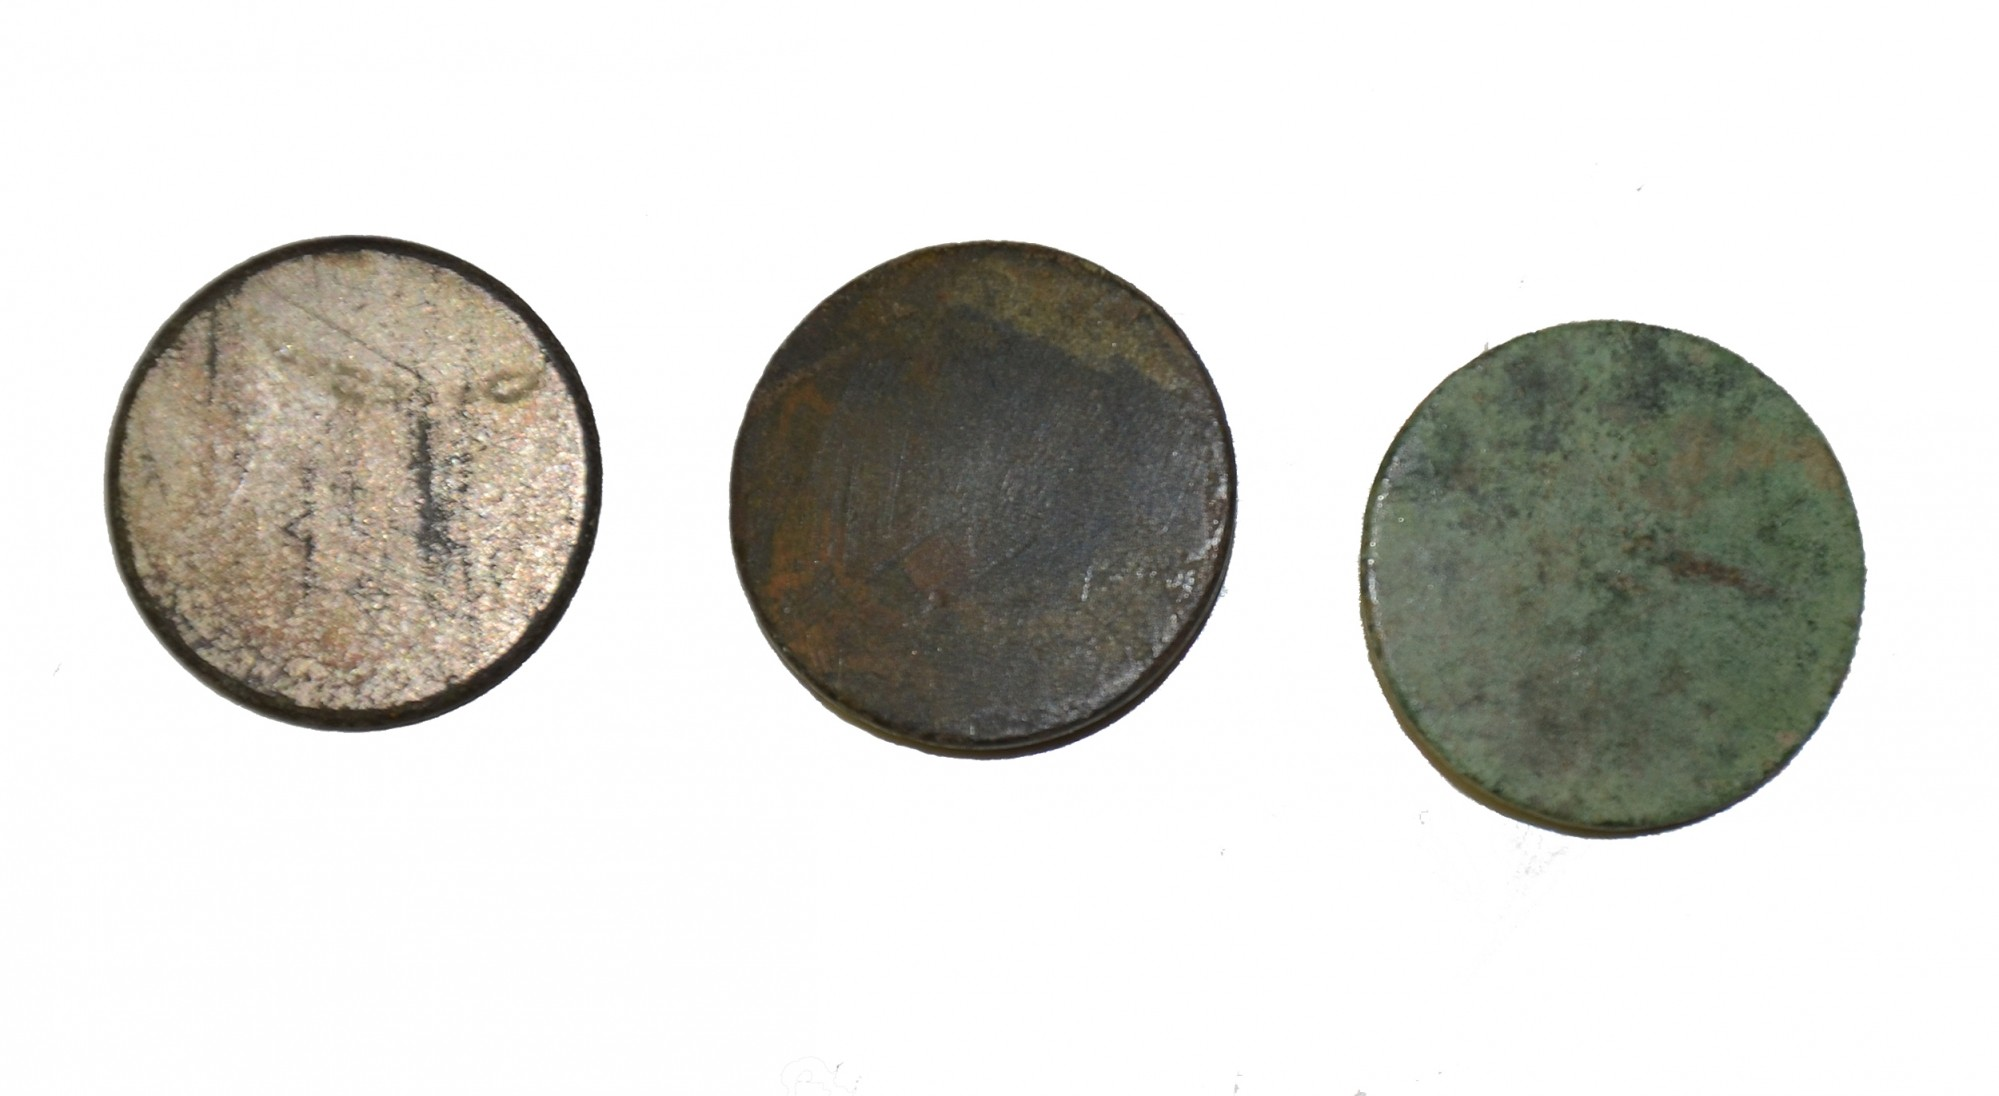 ENGLISH MADE COIN BUTTON RECOVERED NEAR WILLOUGHBY RUN – GETTYSBURG